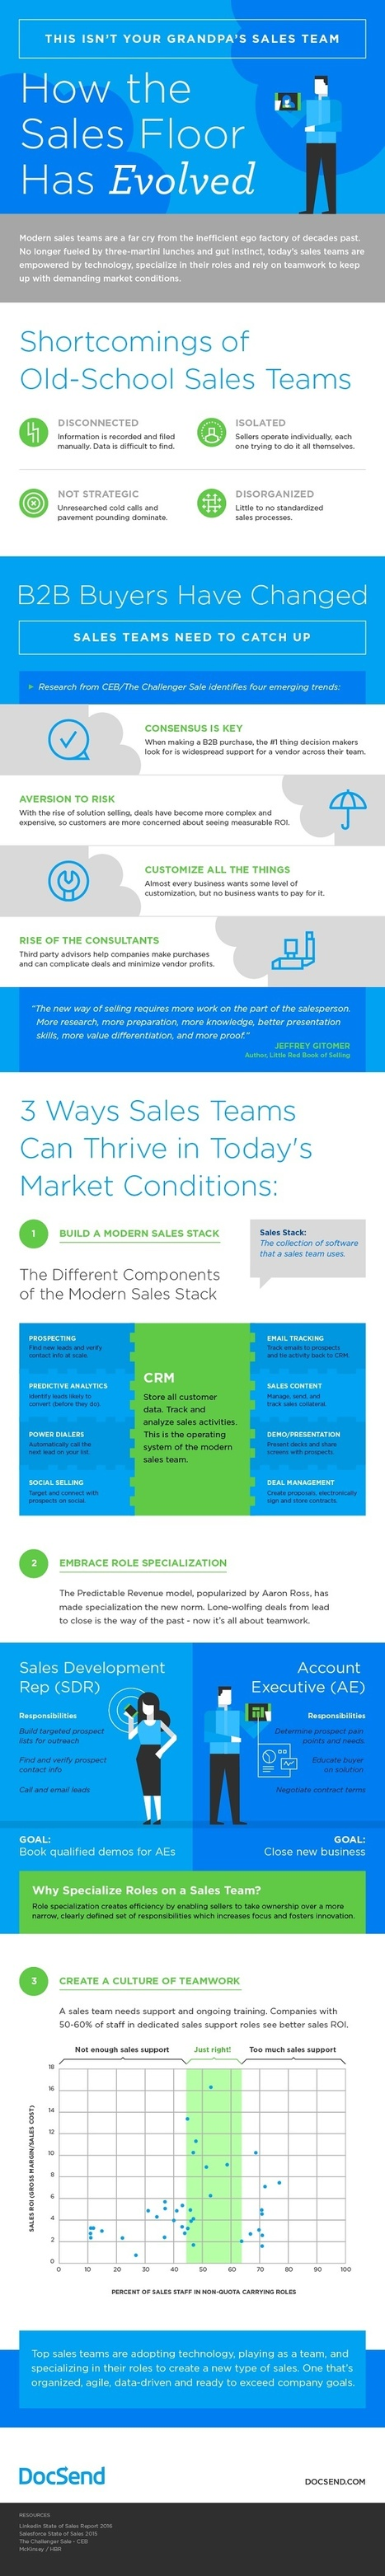 How the Sales Team Has Evolved [Infographic] - Profs | Sales = Collaborating to Co-Create Solutions | Scoop.it